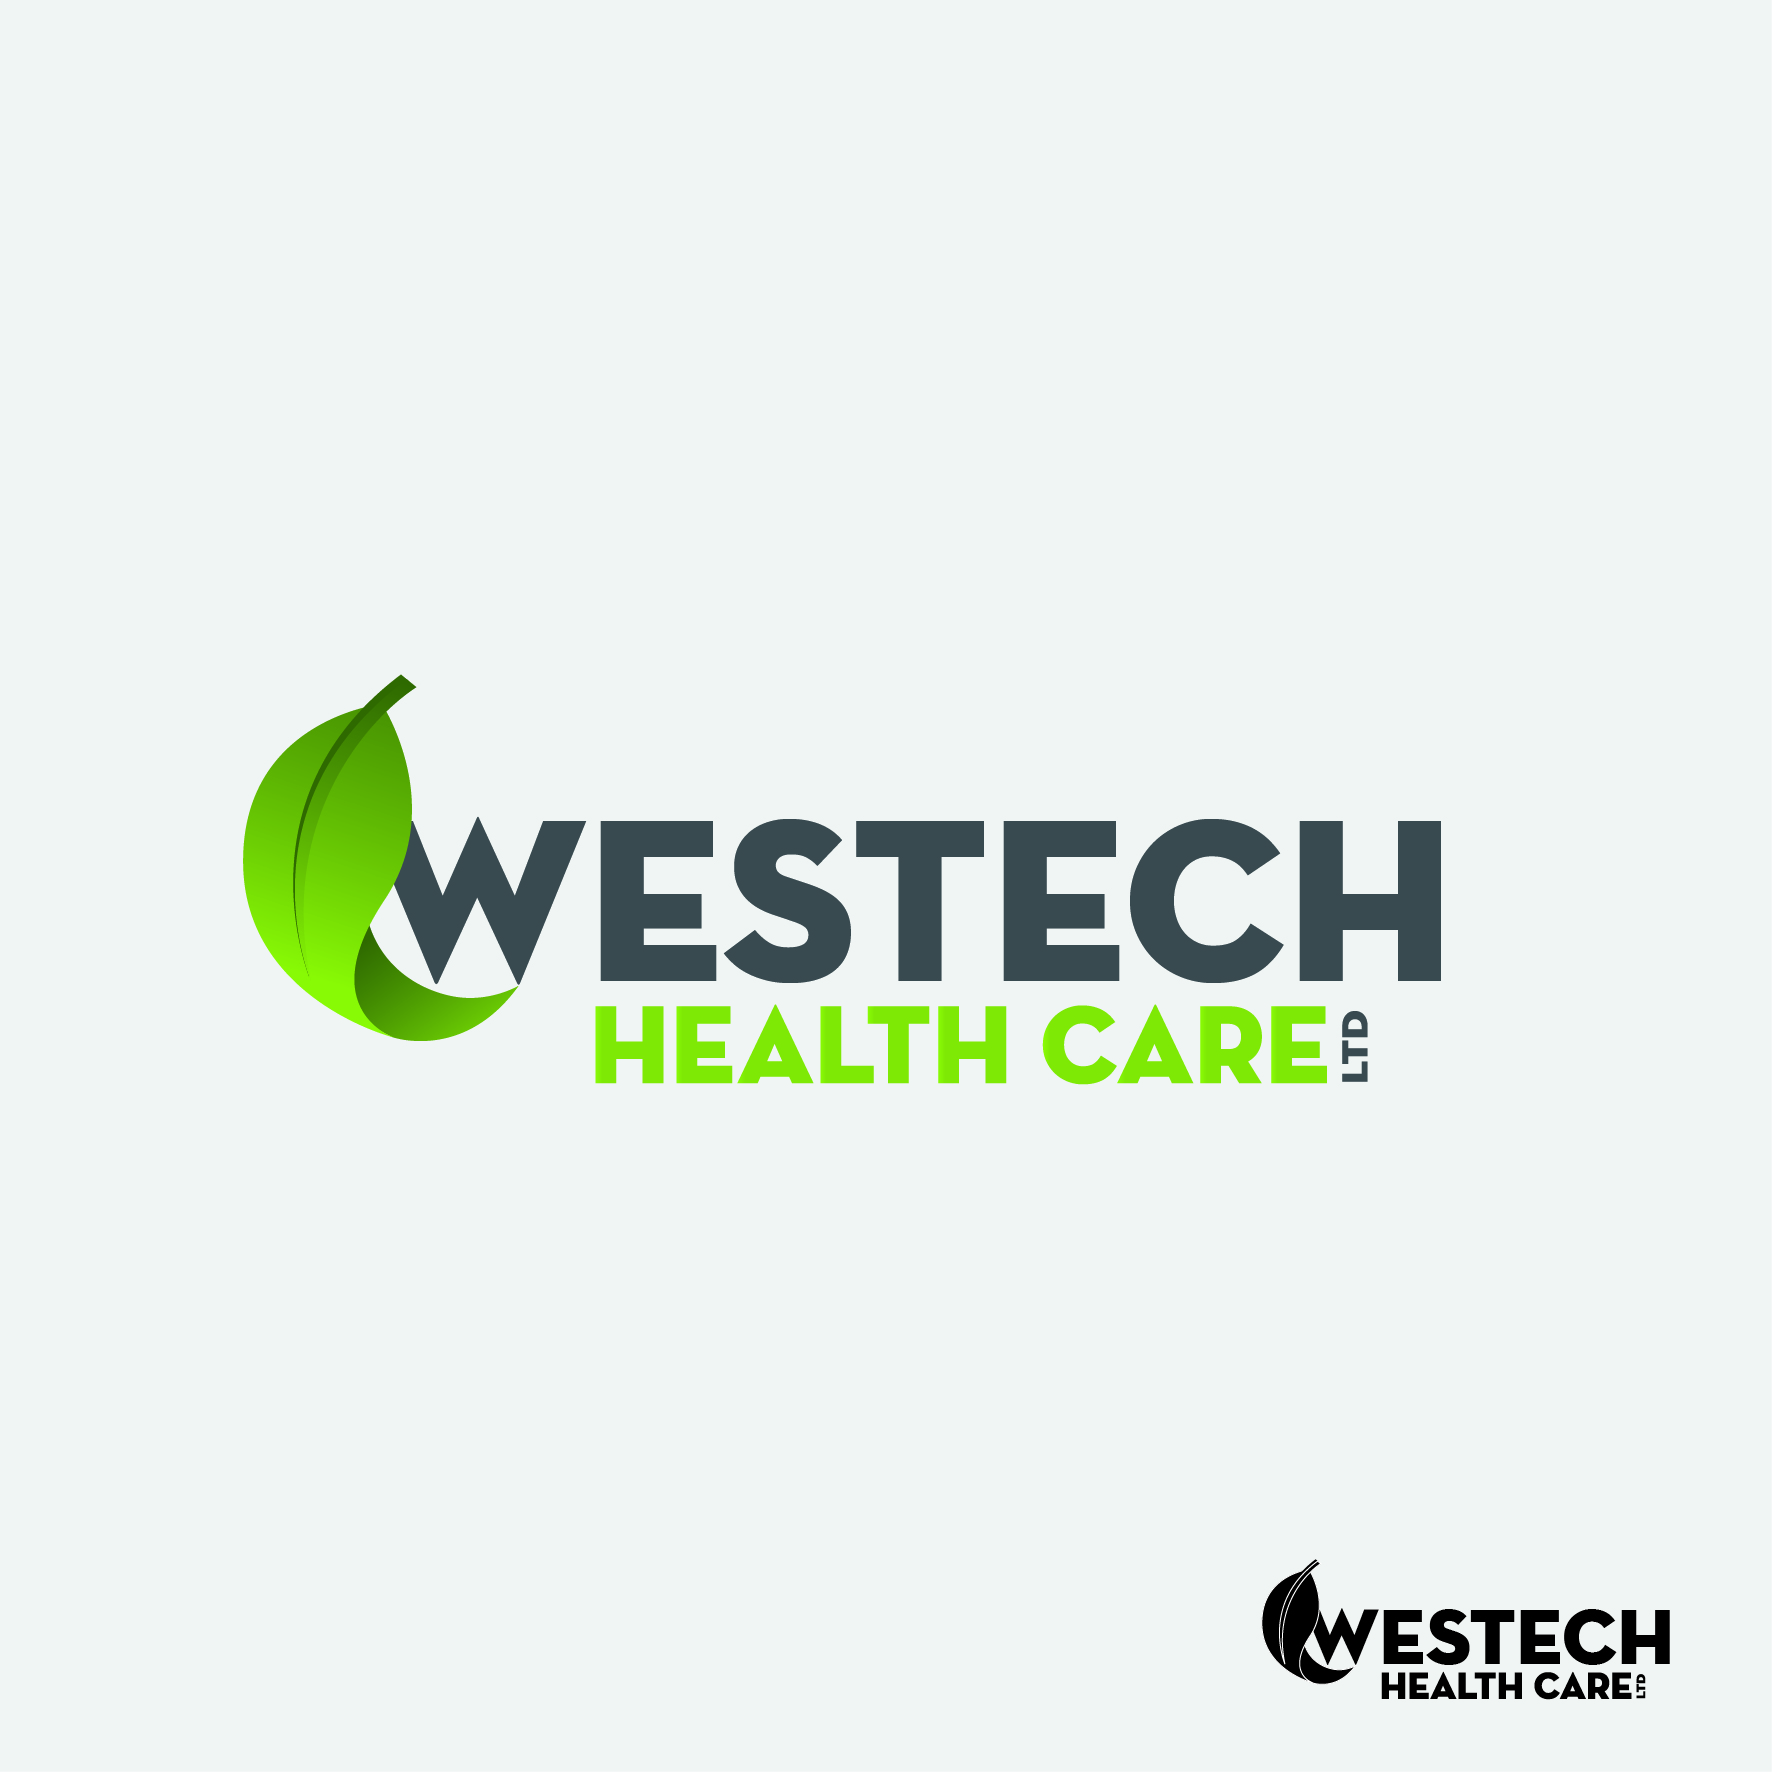 Logo Design by nTia - Entry No. 65 in the Logo Design Contest Creative Logo Design for Westech Health Care Ltd..